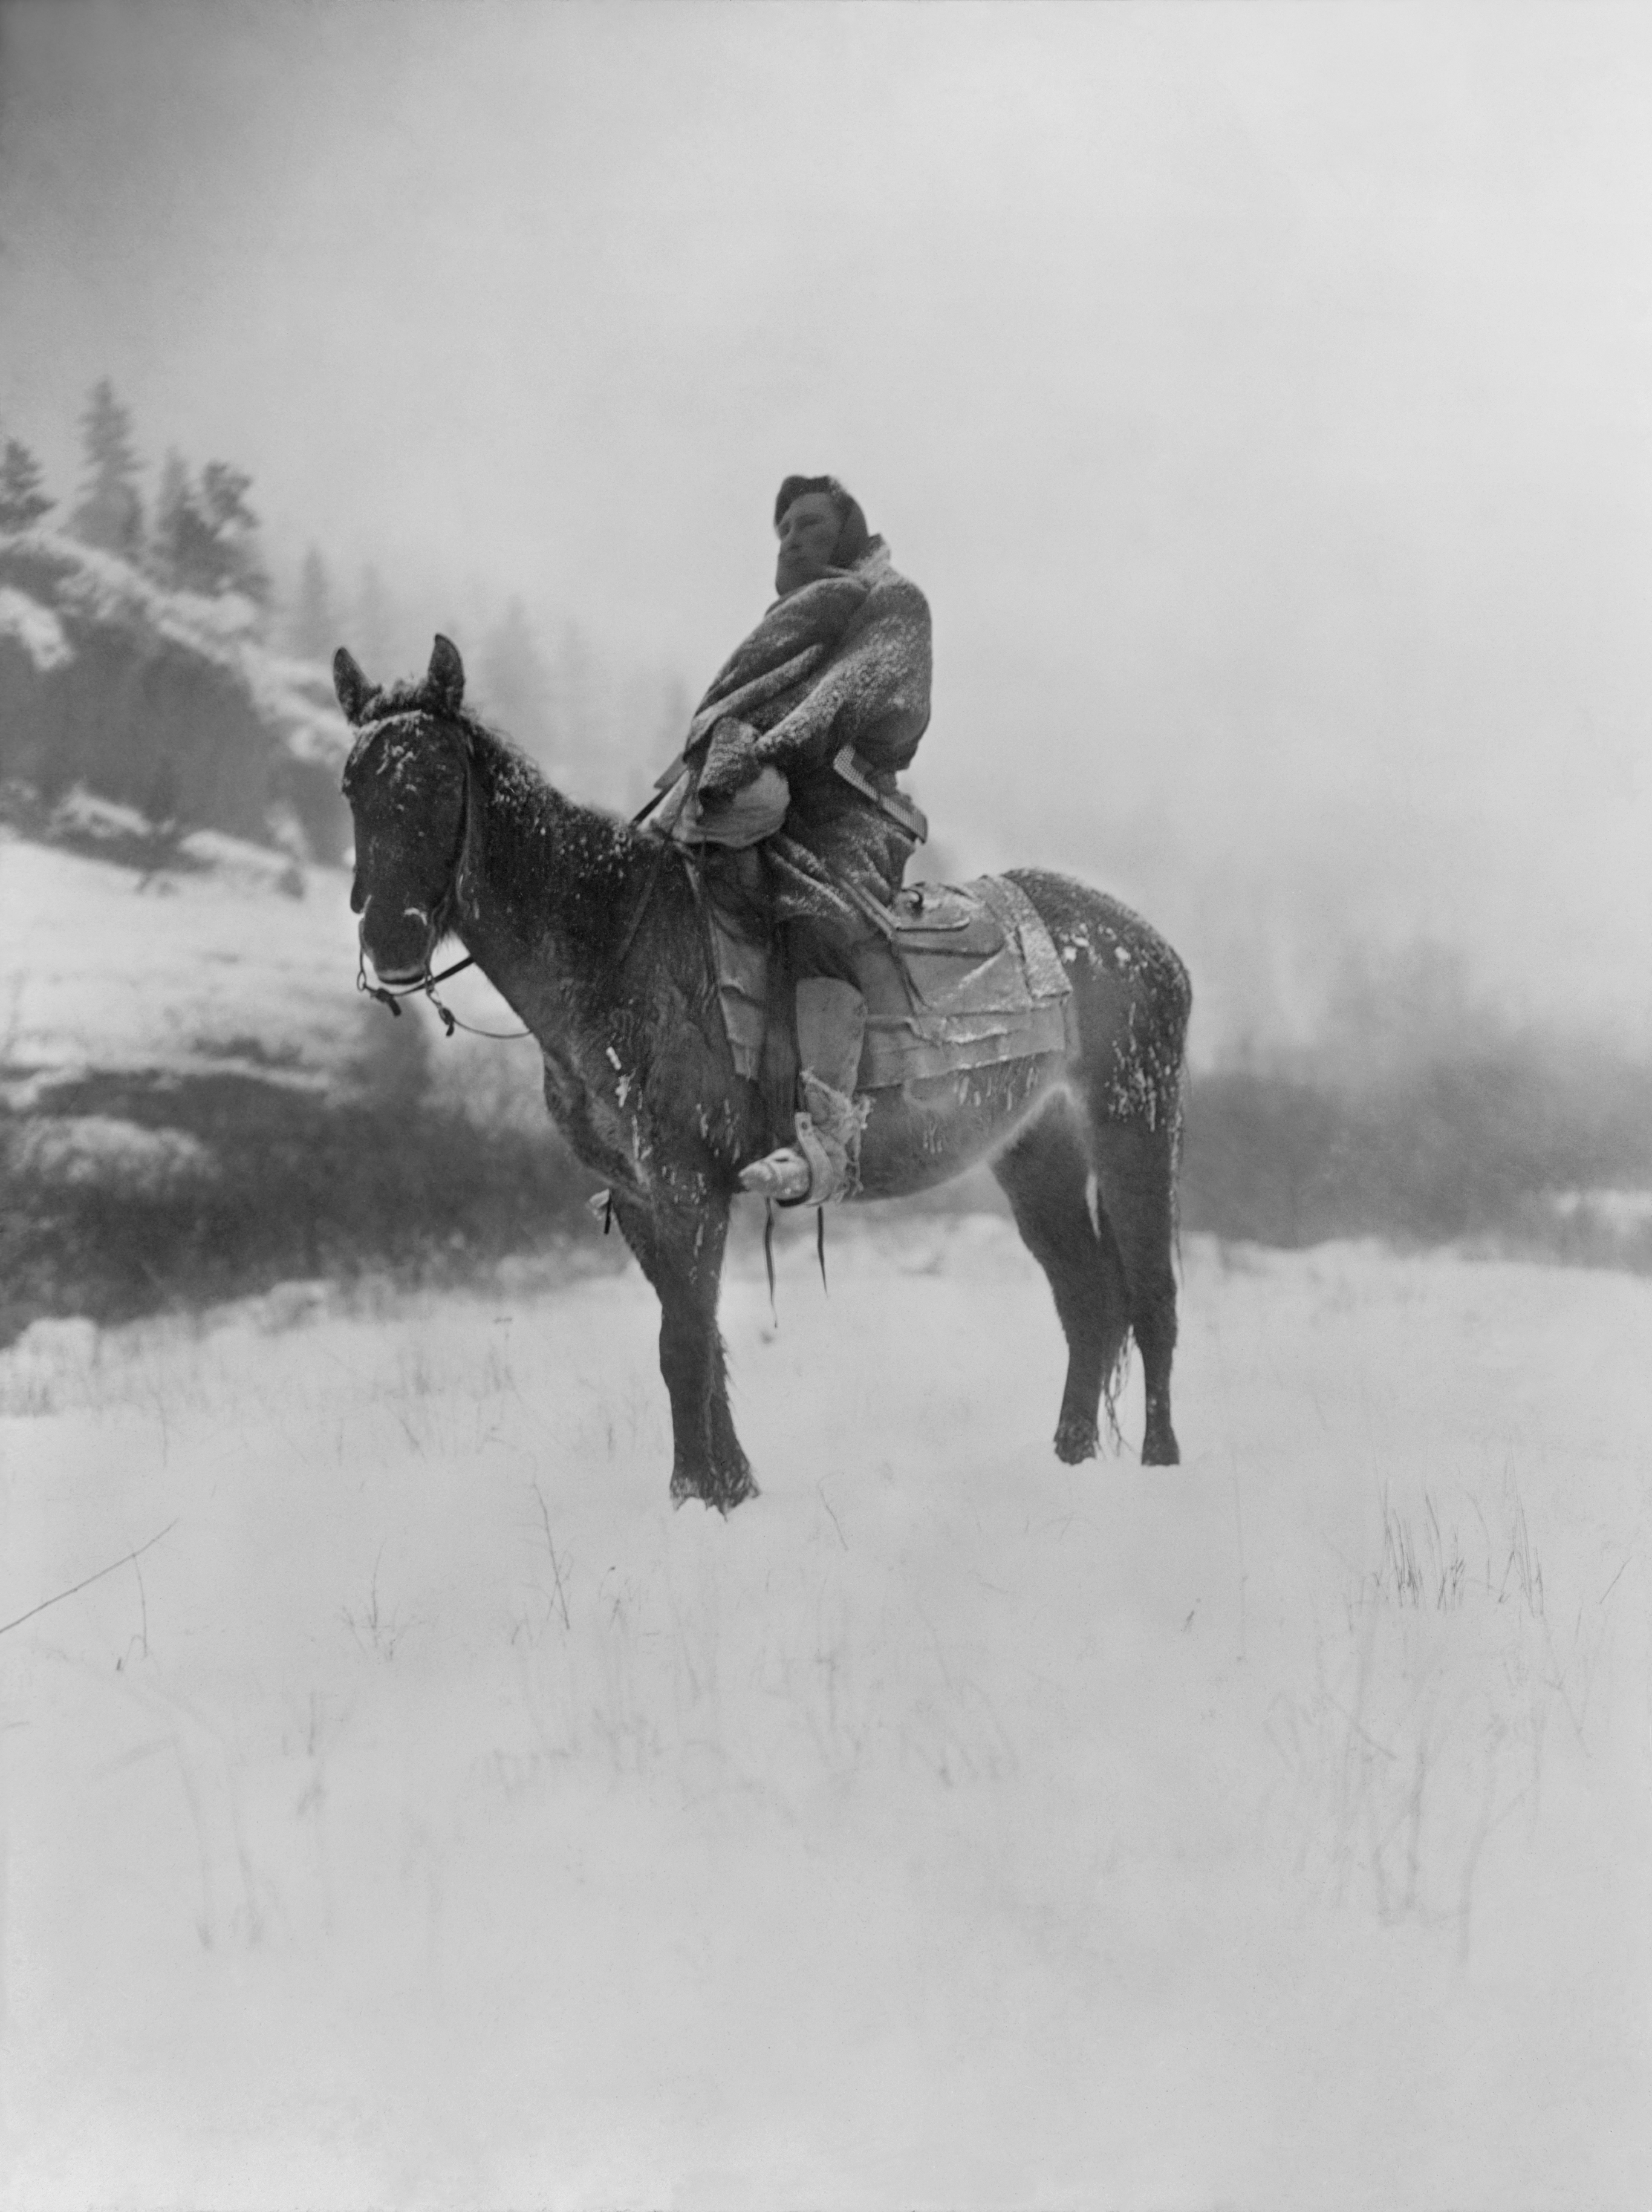 The_Scout_in_Winter__Crow__1908__Edward_S._Curtis_(restored_II).jpg